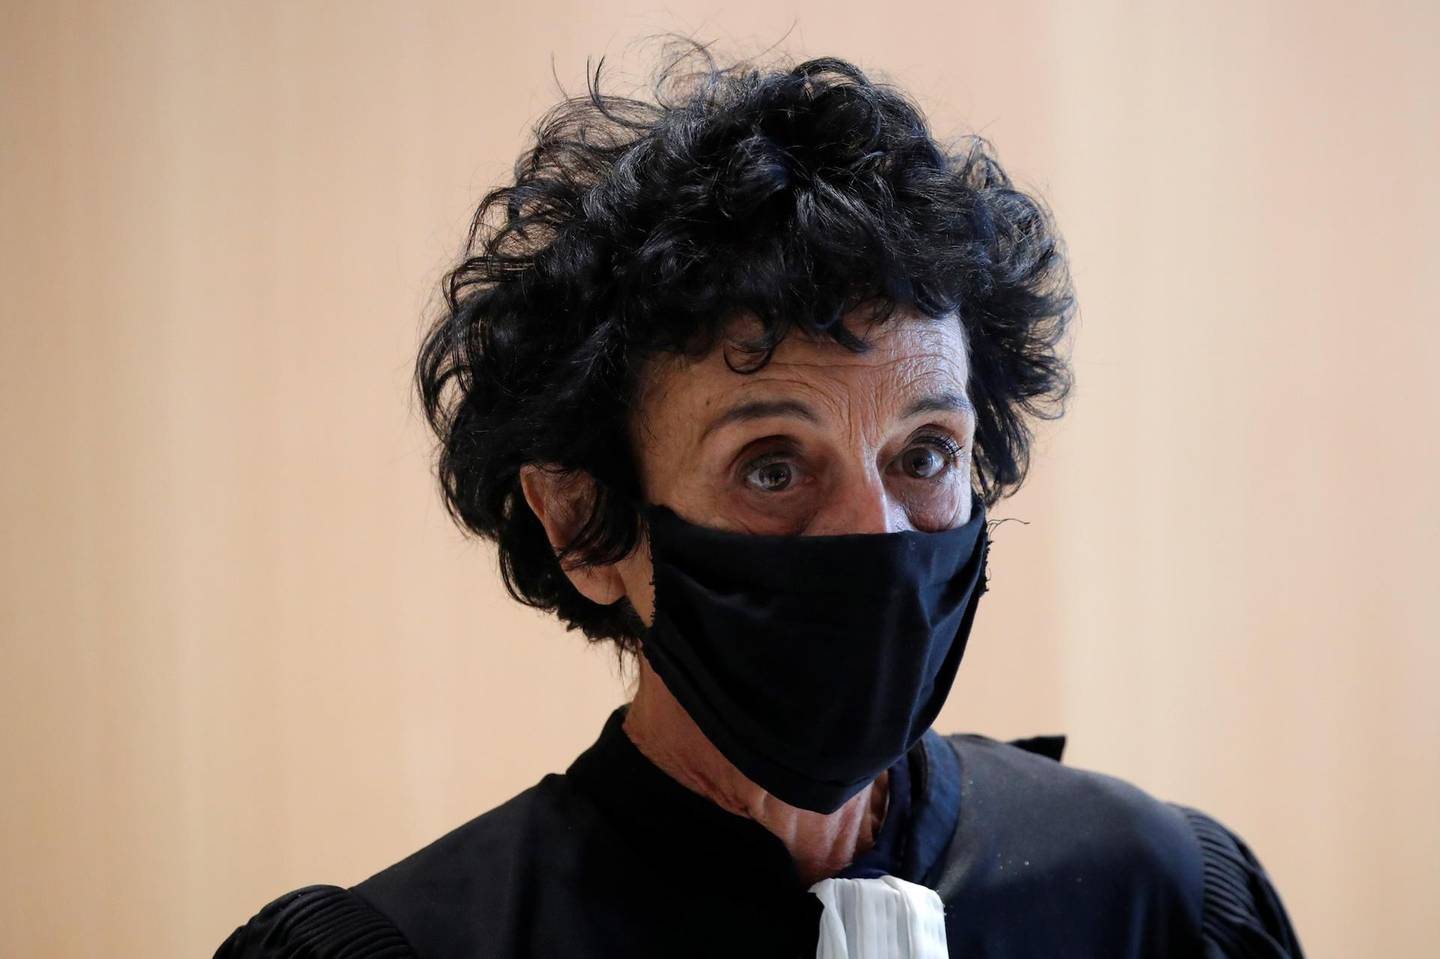 Isabelle Coutant-Peyre, lawyer for one of the defendant Ali Riza Polat, leaves the courtroom during a break on the opening day of the trial of the January 2015 Paris attacks against Charlie Hebdo satirical weekly, a policewoman in Montrouge and the Hyper Cacher kosher supermarket, at Paris courthouse, France, Steptember 2, 2020. The trial will take place from September 2 to November 10. REUTERS/Charles Platiau